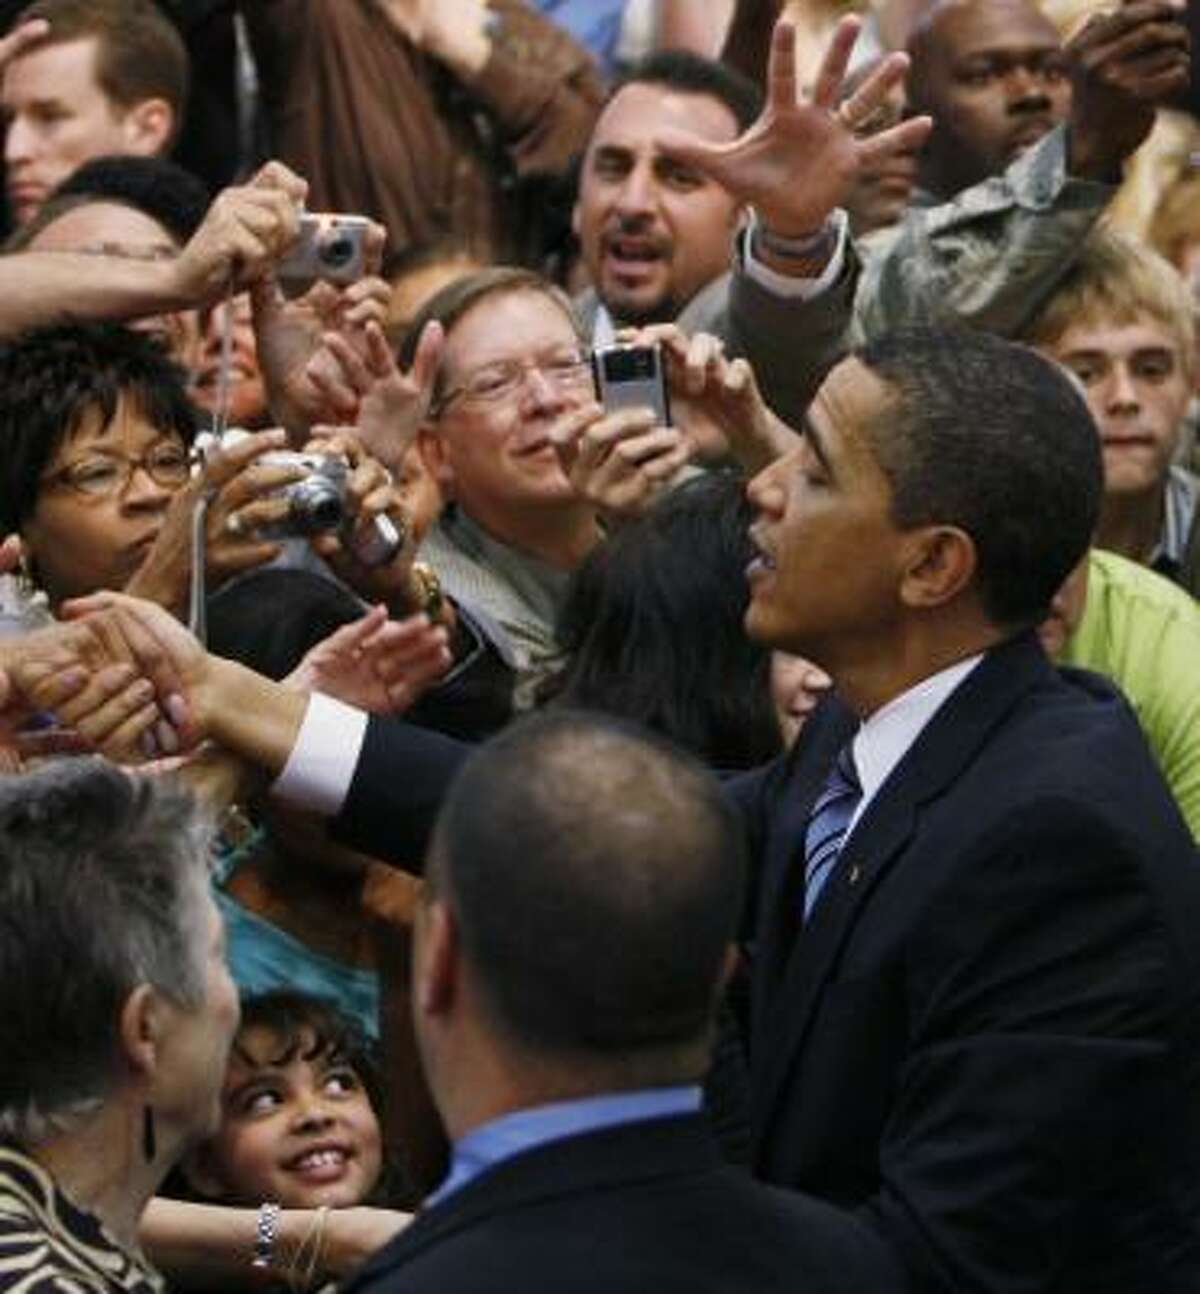 The president made his pitch for credt reform last week at a high school in Rio Ranch, N.M.